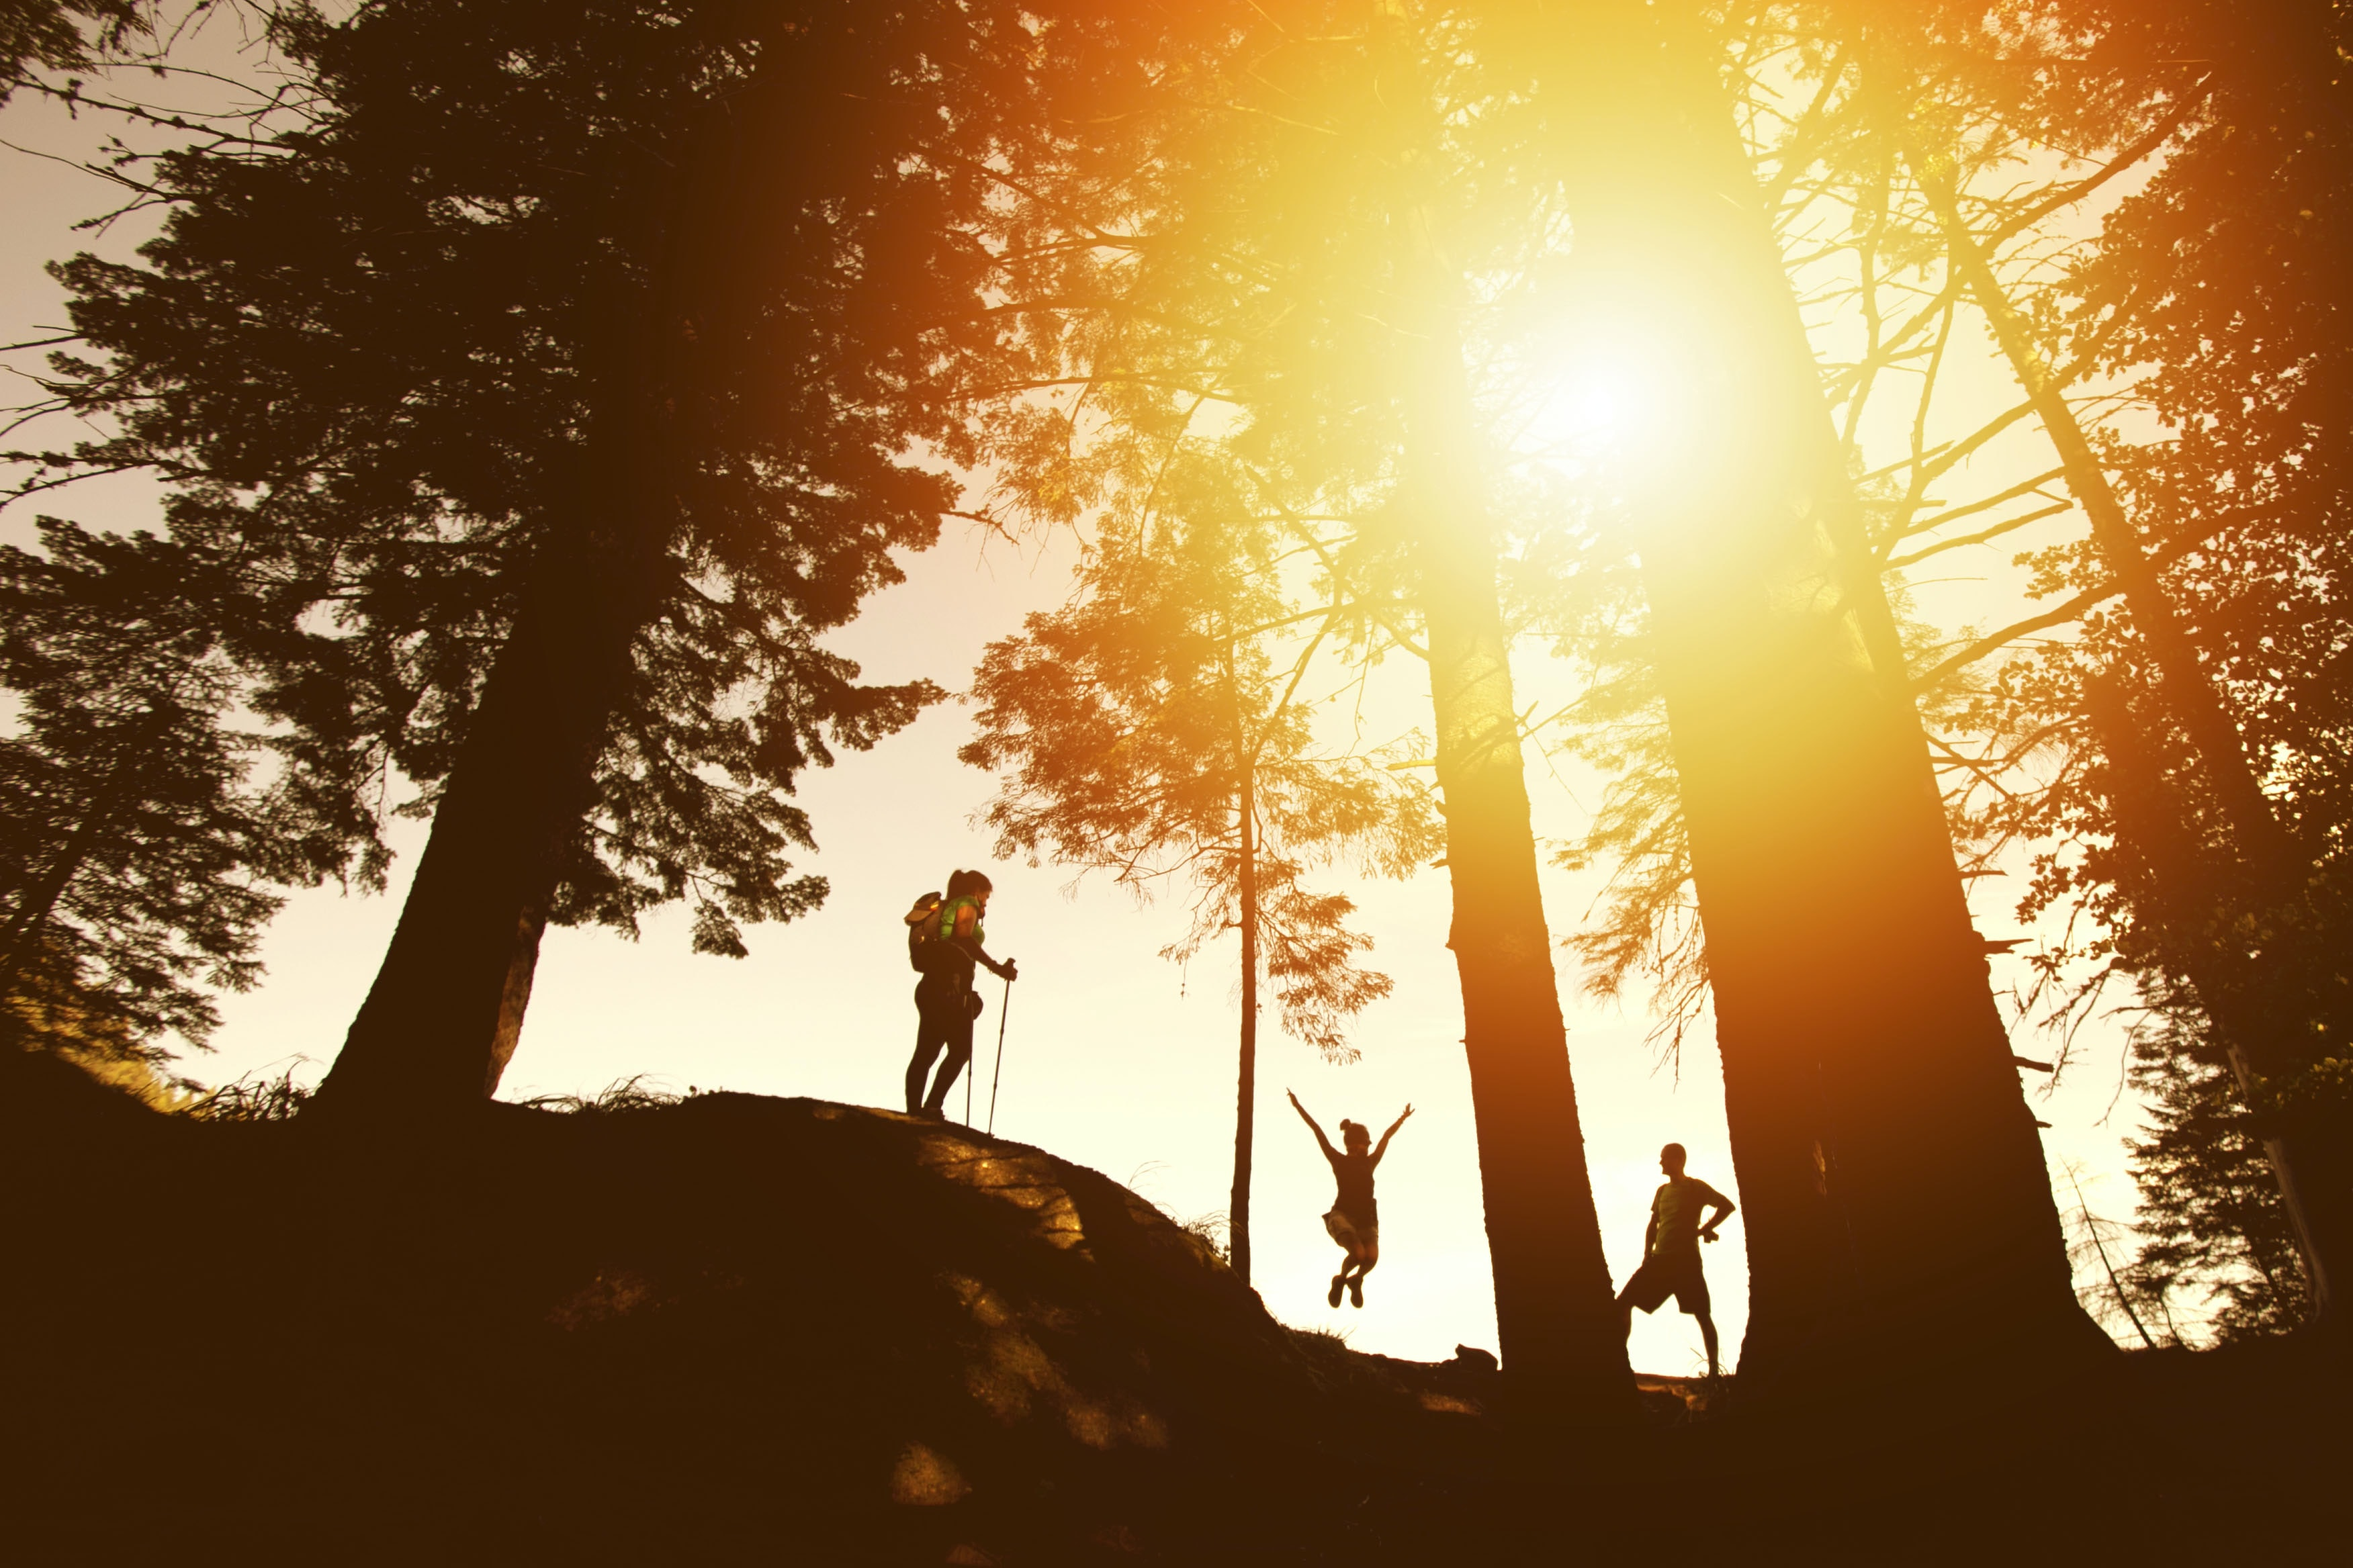 The sun flares between tree trunks and over three hikers on a hill, two standing, one jumping with arms raised